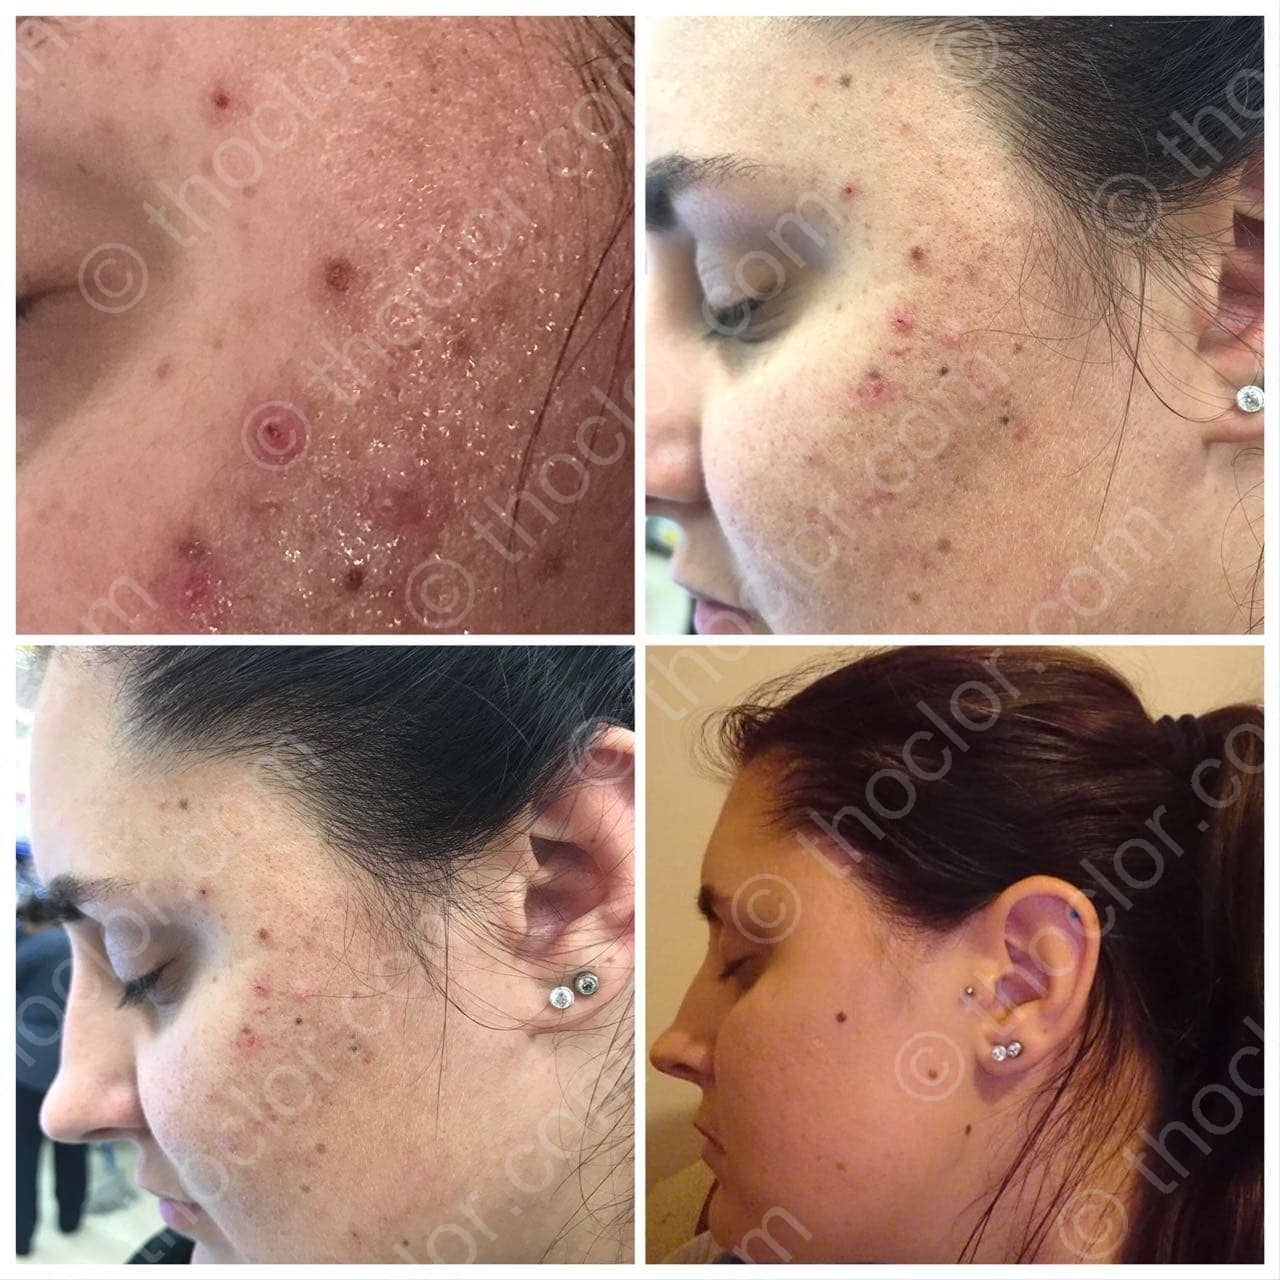 Acne is quickly improved with GF2 from Thoclor Labs